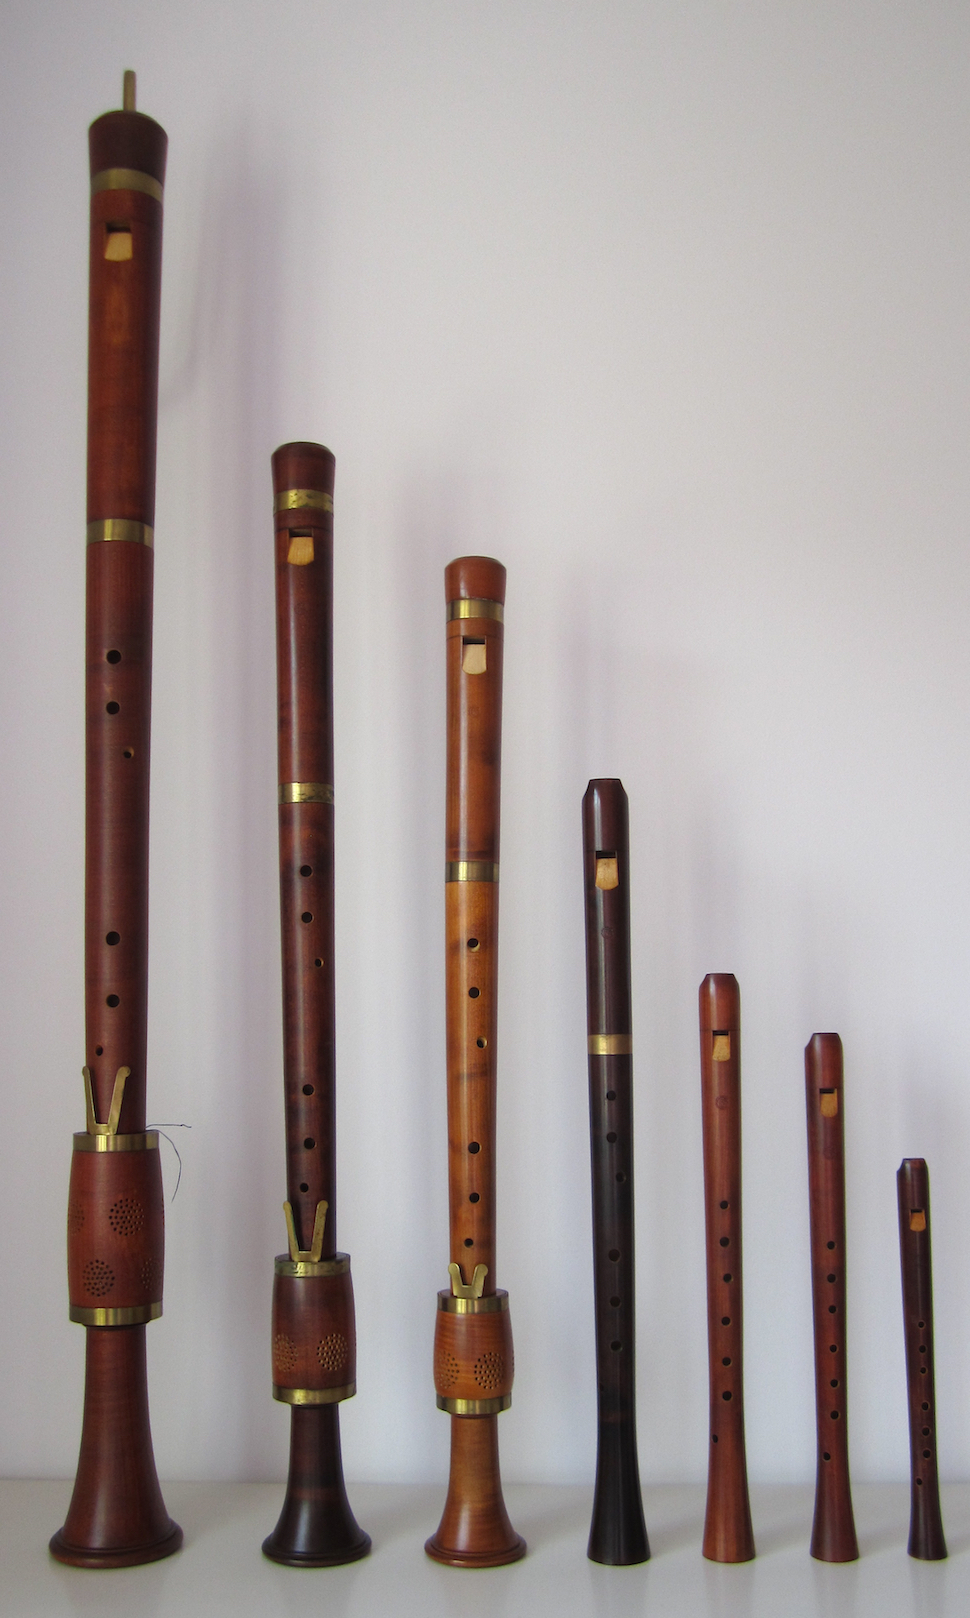 Renaissance Recorder Consort By Walter Meili on michael thomas facebook